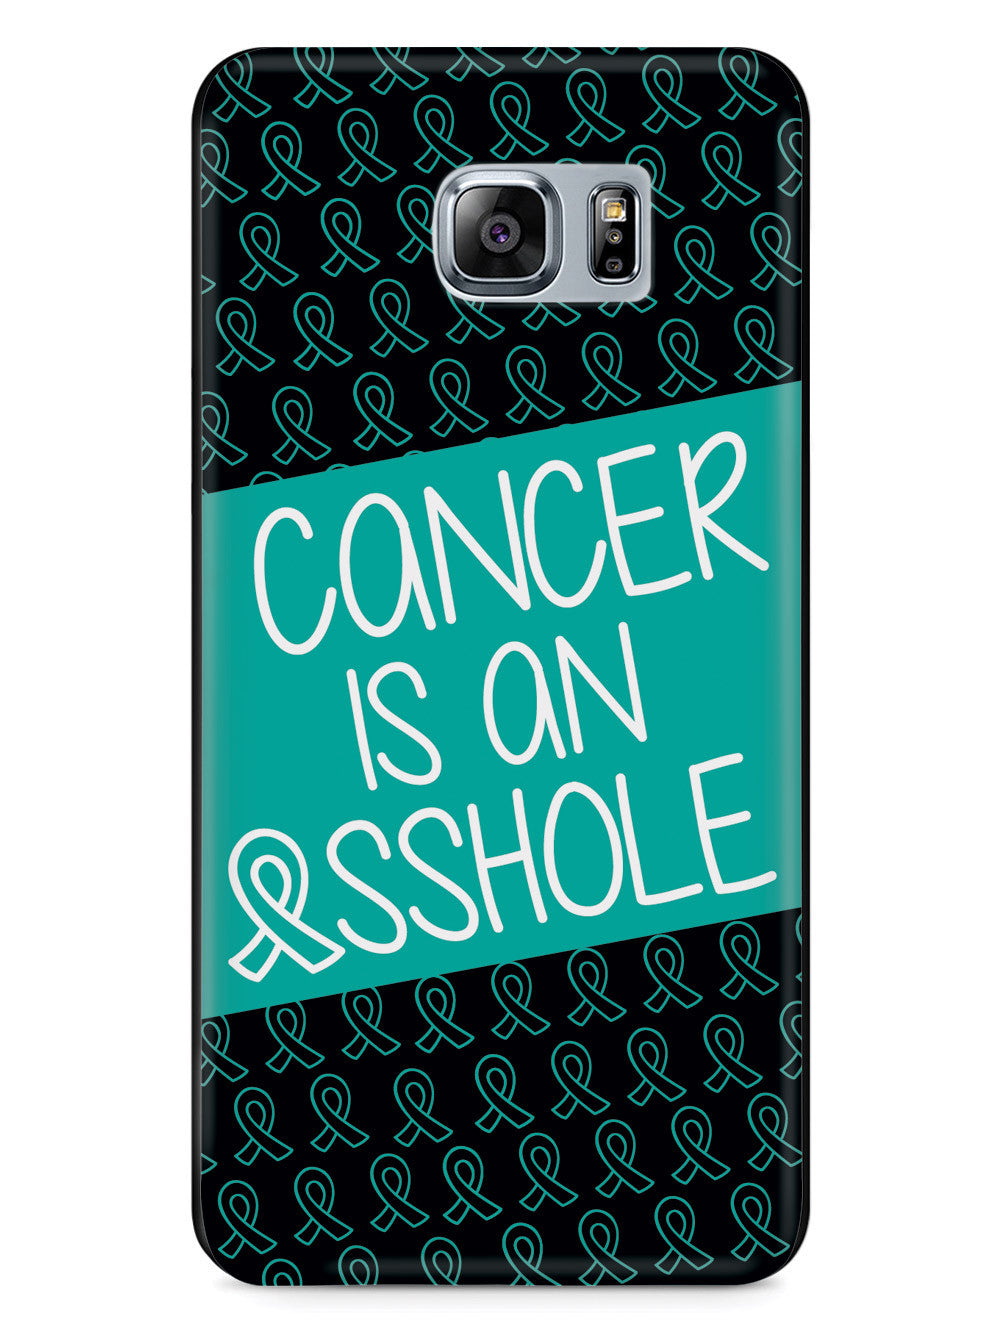 Cancer Is An Asshole - Teal Case